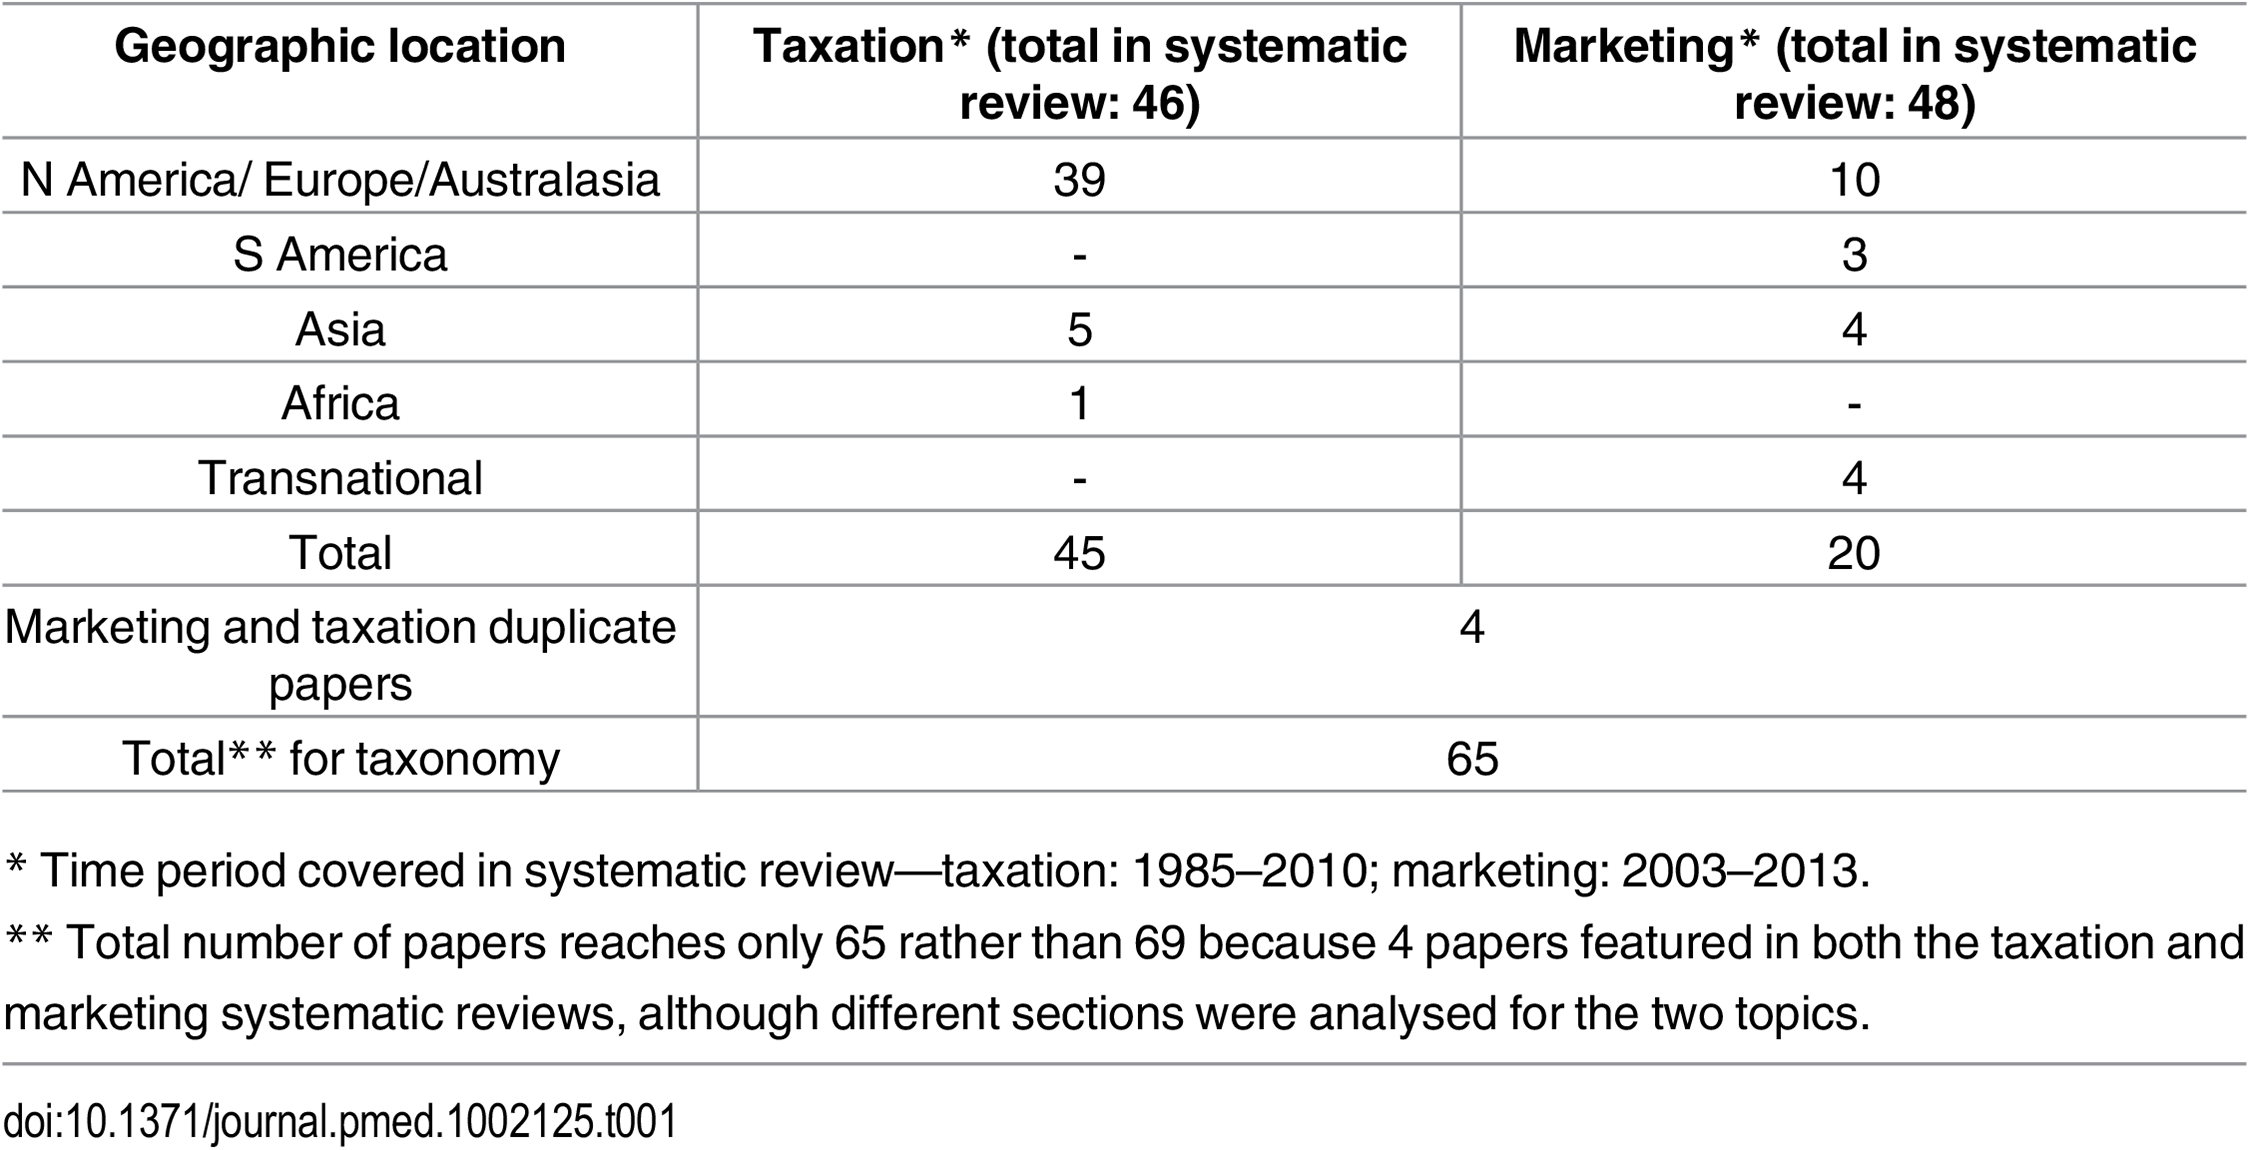 The number of papers from the two systematic reviews included in the analysis by geographic location and topic.